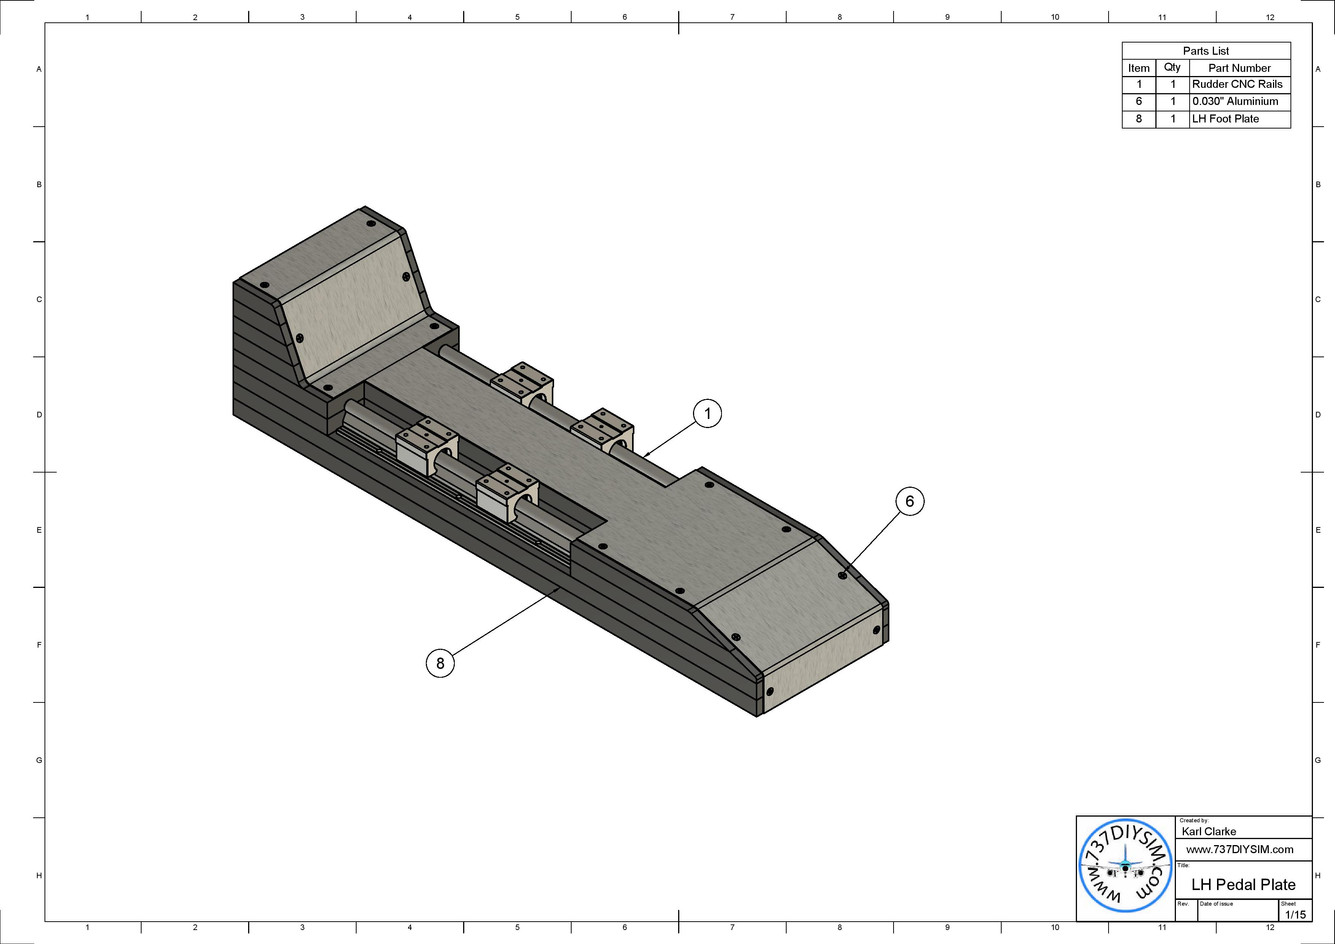 LH Pedal Plate Drawing v1-page-001.jpg